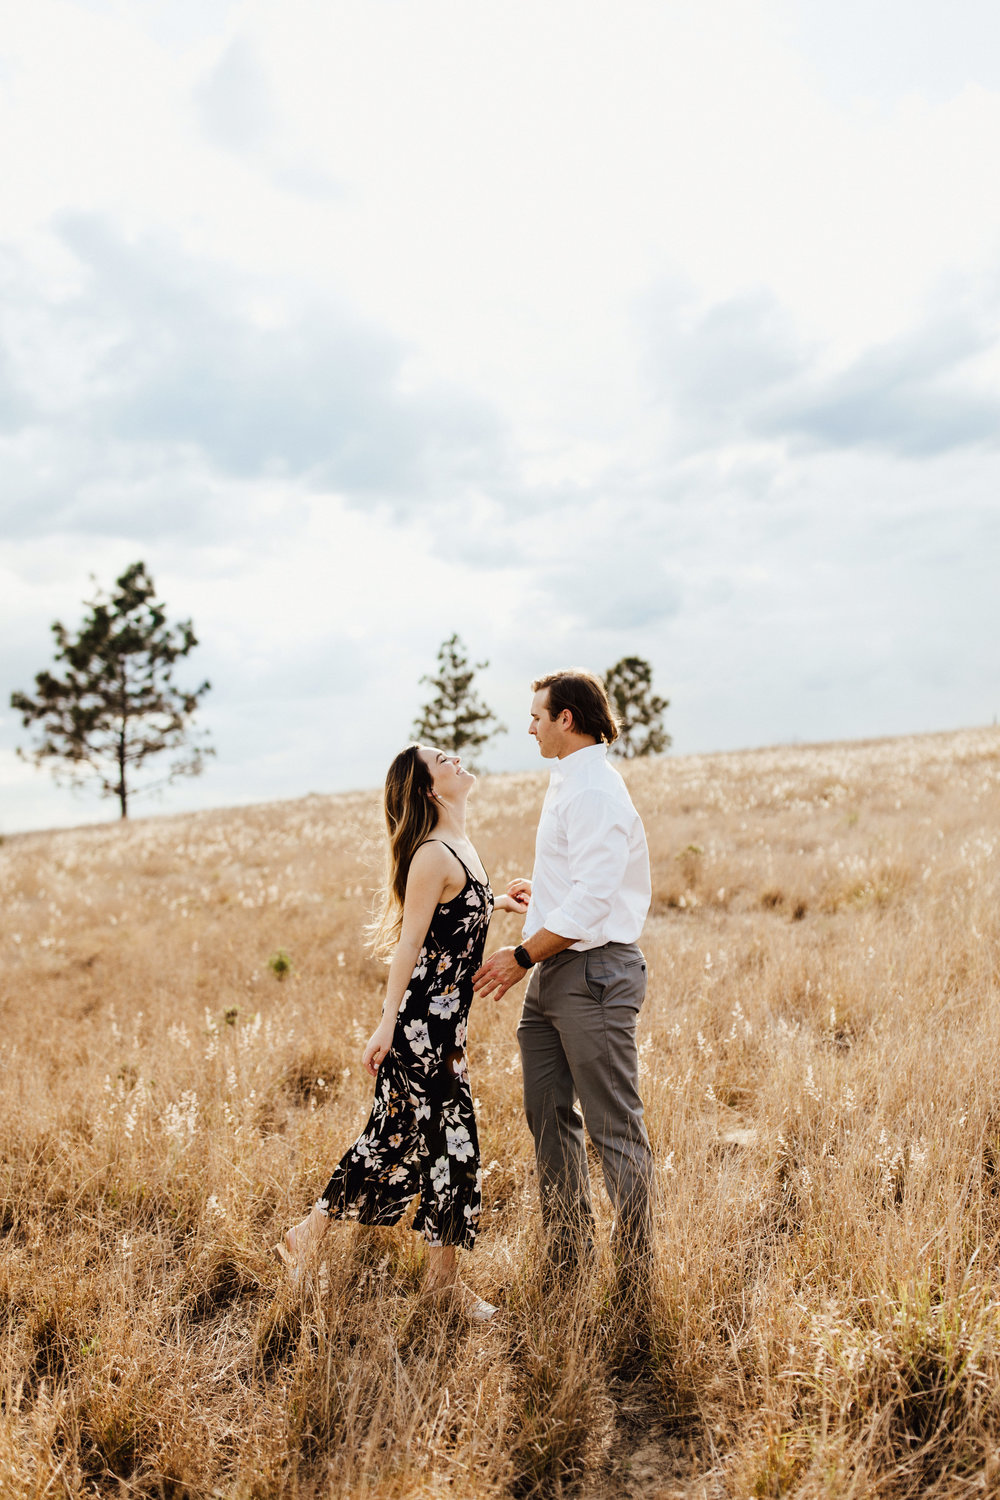 Sarah & Sam's Magical Engagement Session